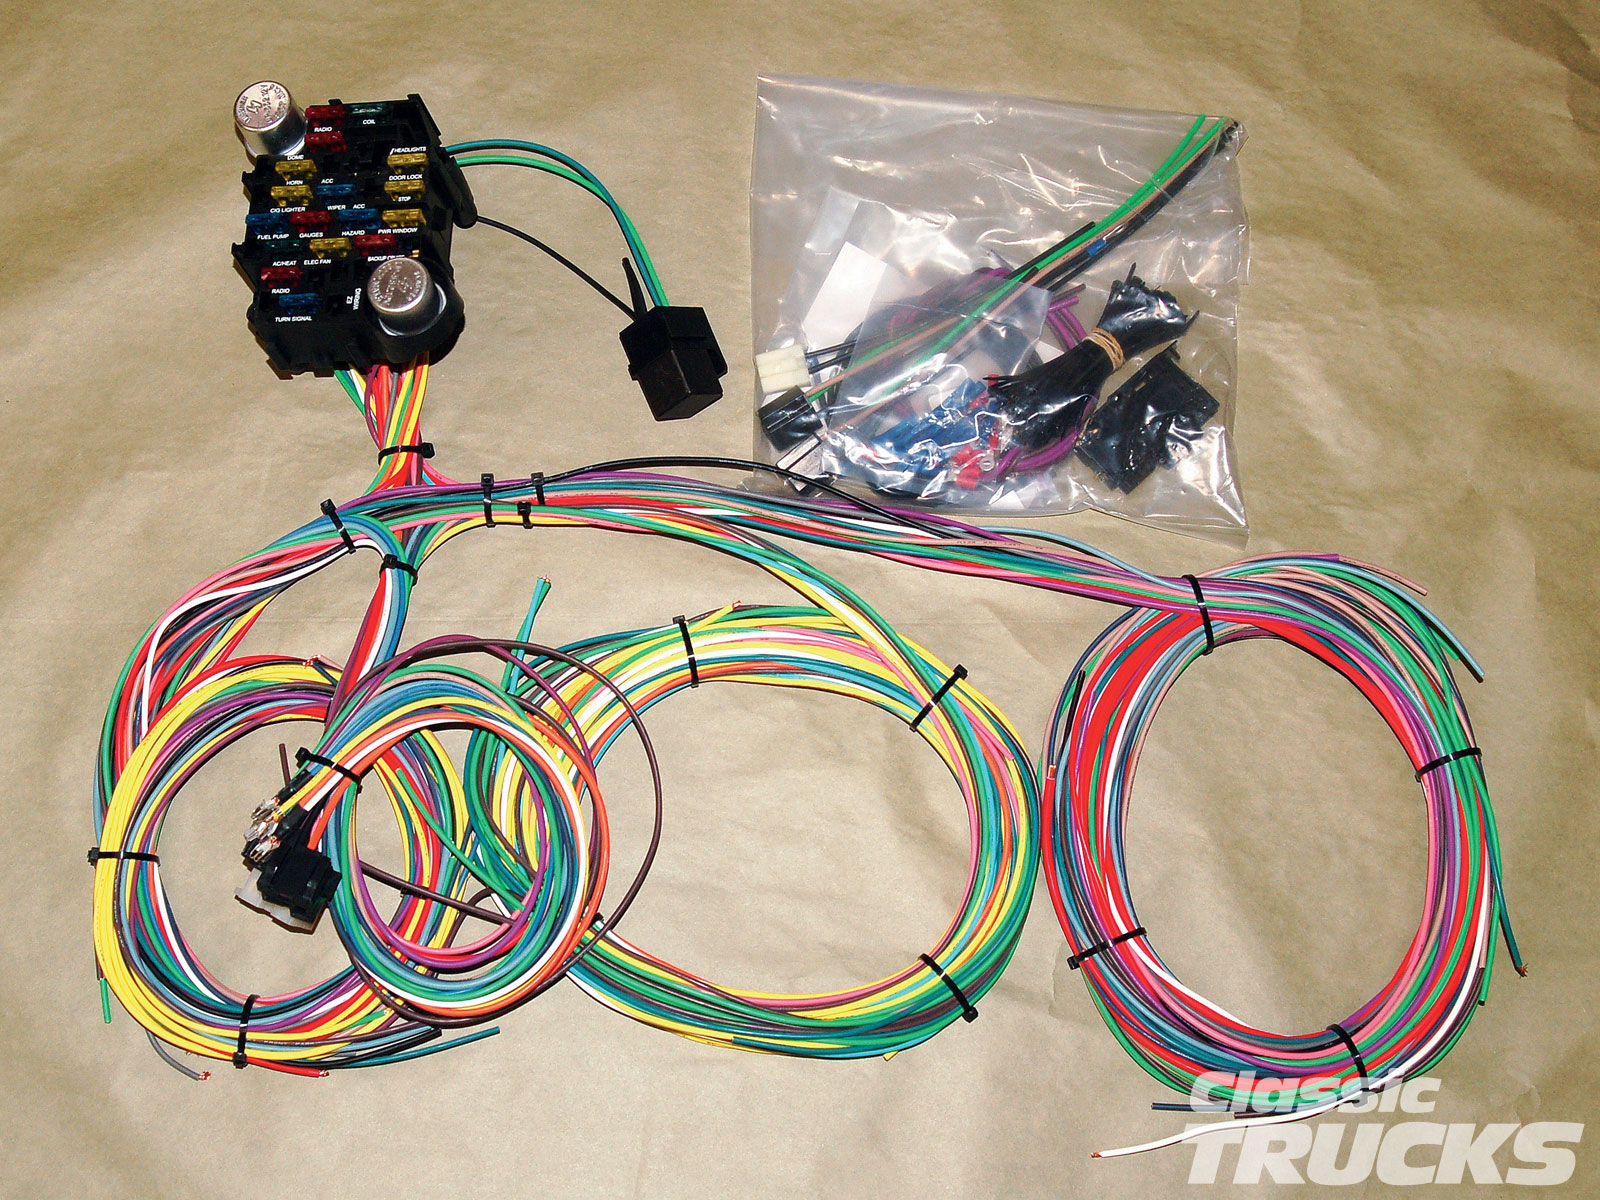 easy wiring harness wiring diagrams lol easy wiring harness kit car [ 1600 x 1200 Pixel ]